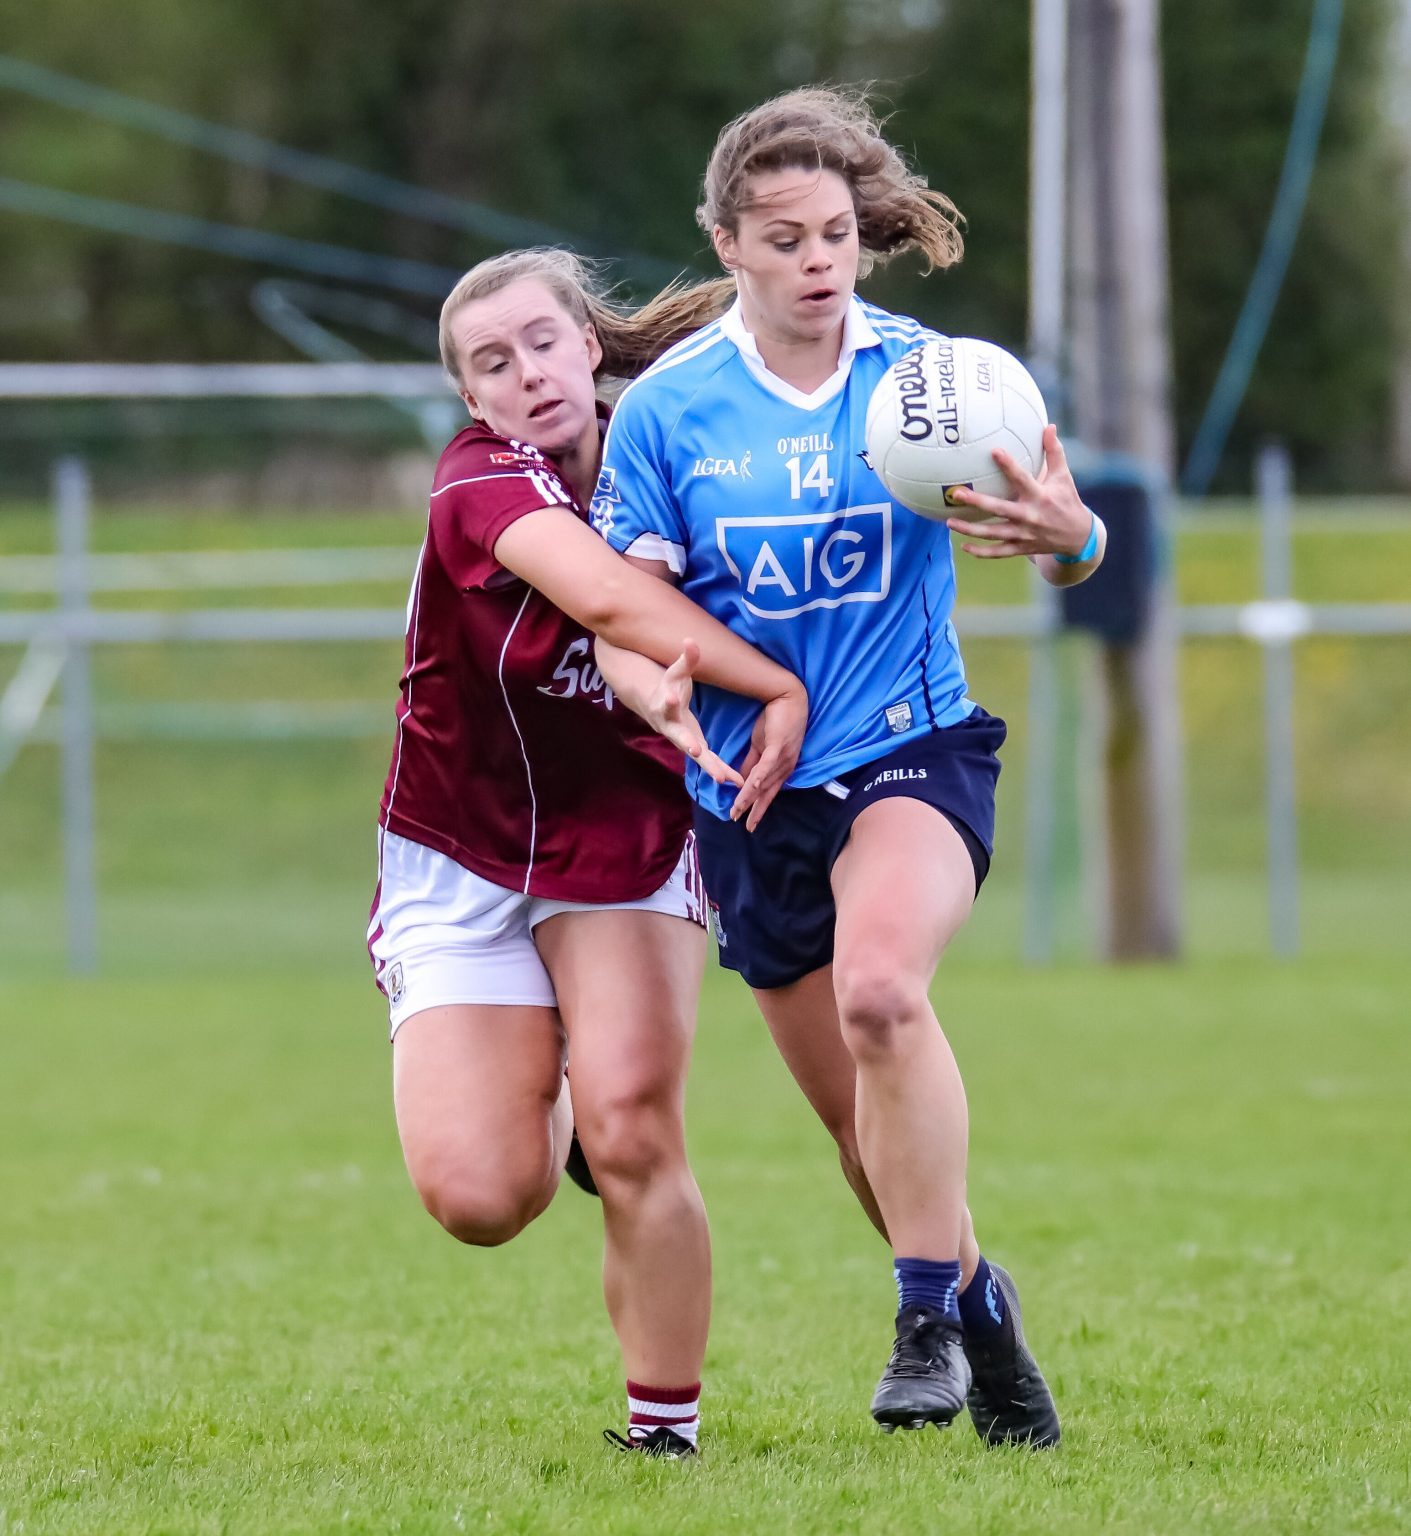 Dublin Ladies Gaelic Football Star Noelle Healy In Action Against Galway